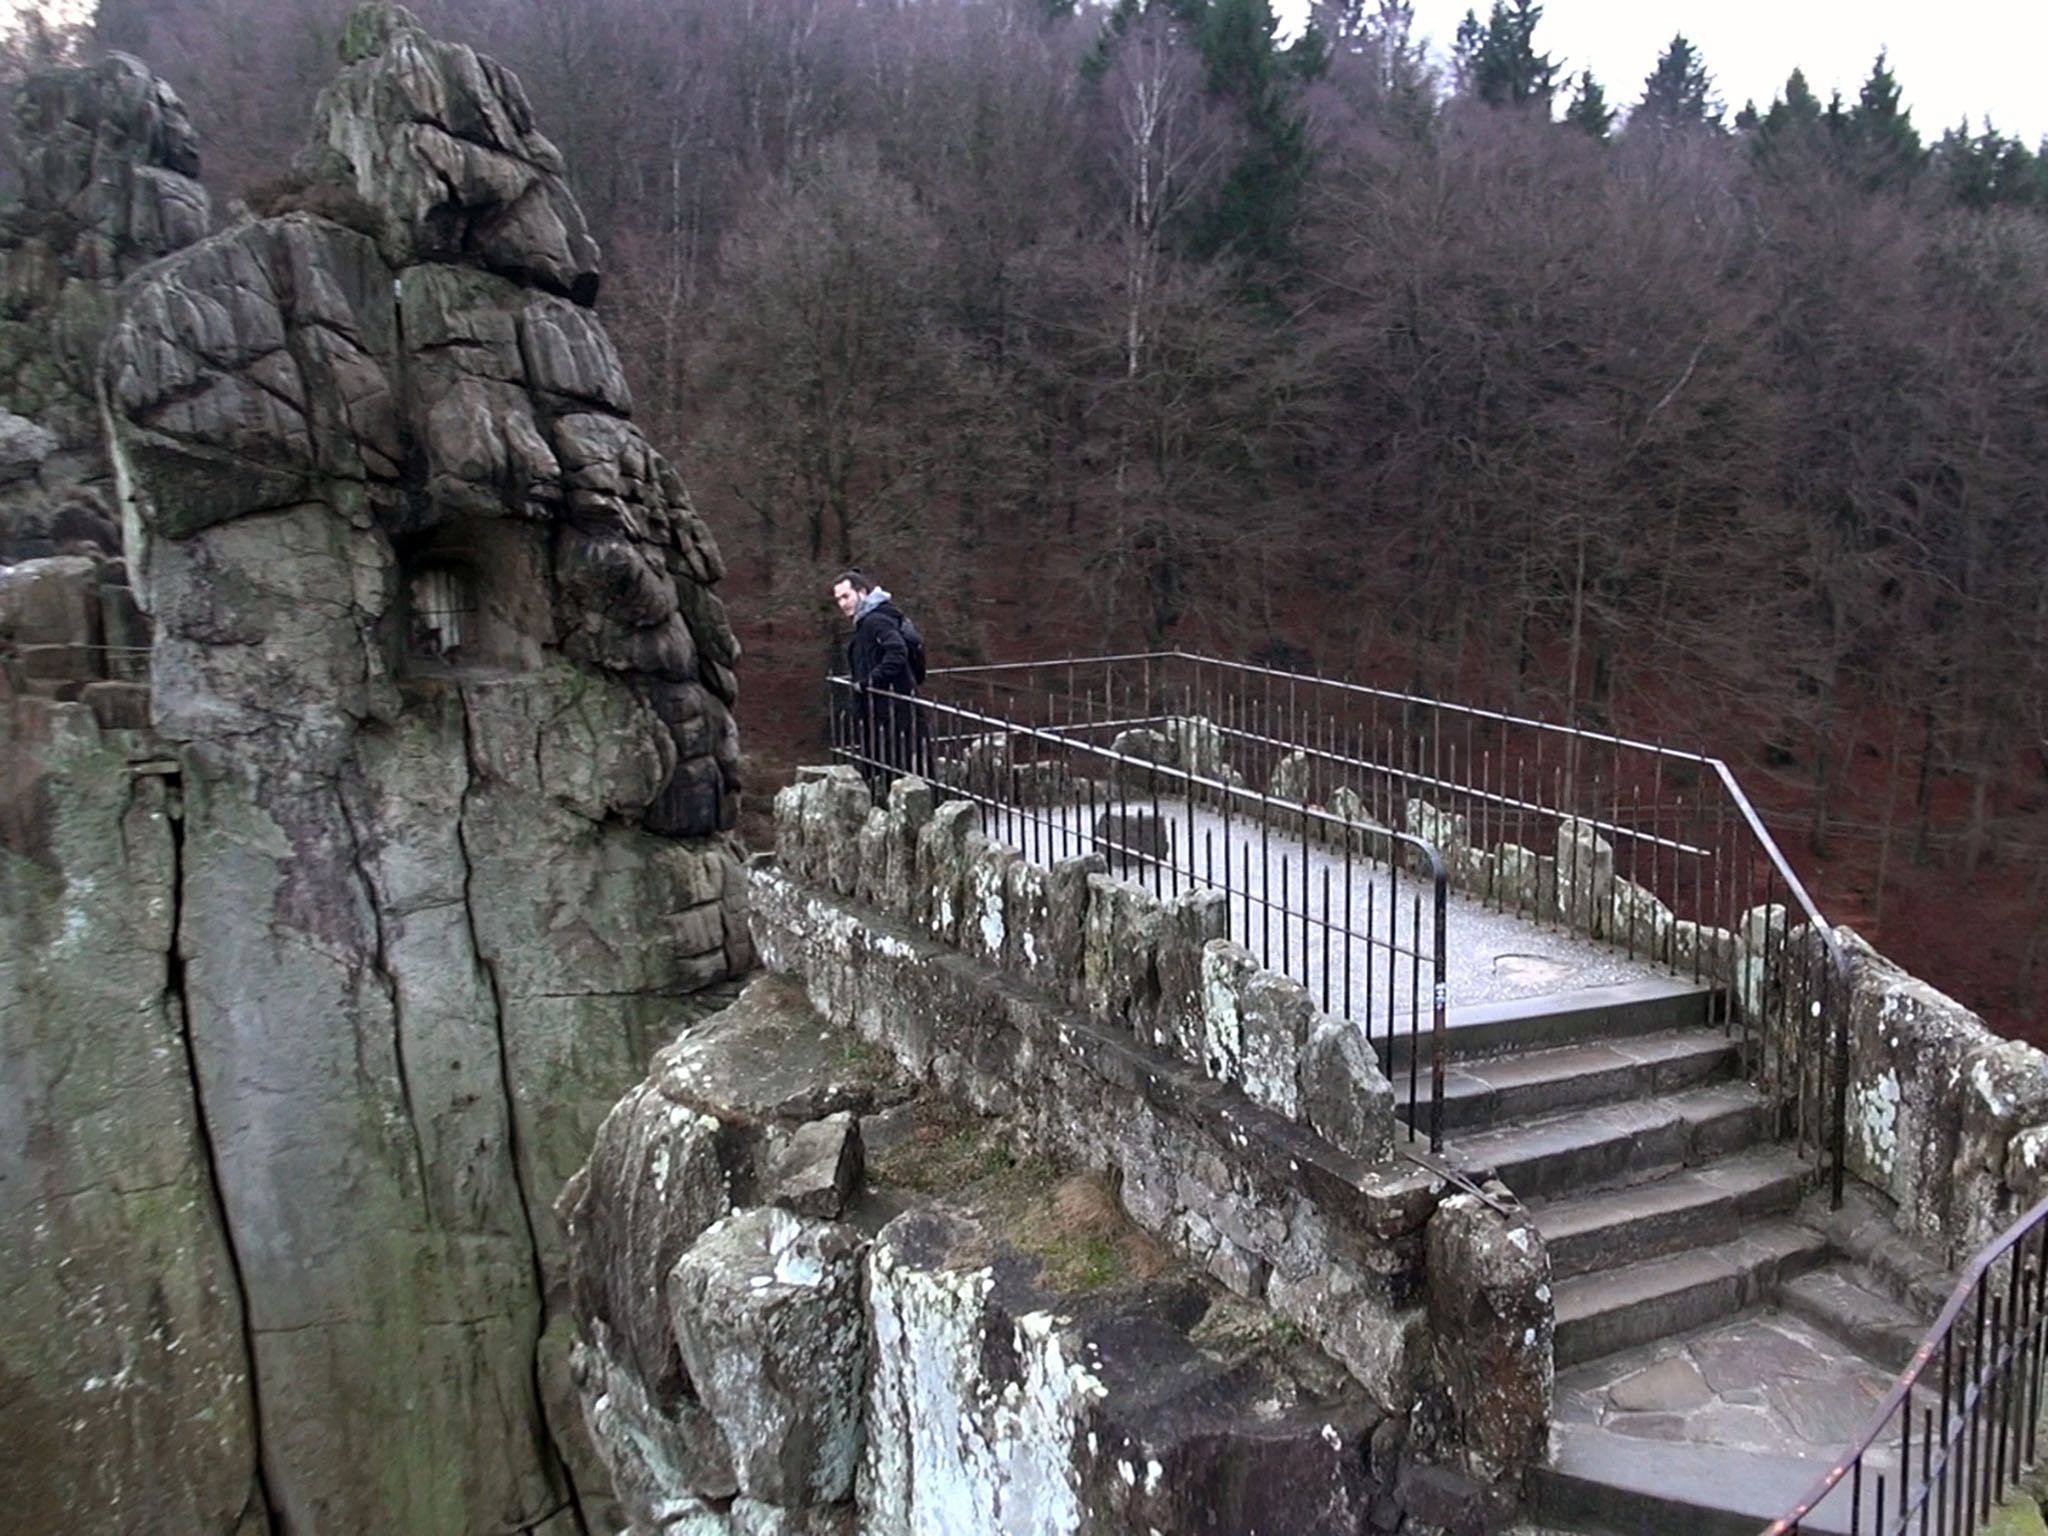 Externsteine, Germany: Robert Joe explores Externsteine looking for reasons why Himmler was... [Photo of the day - December 2016]